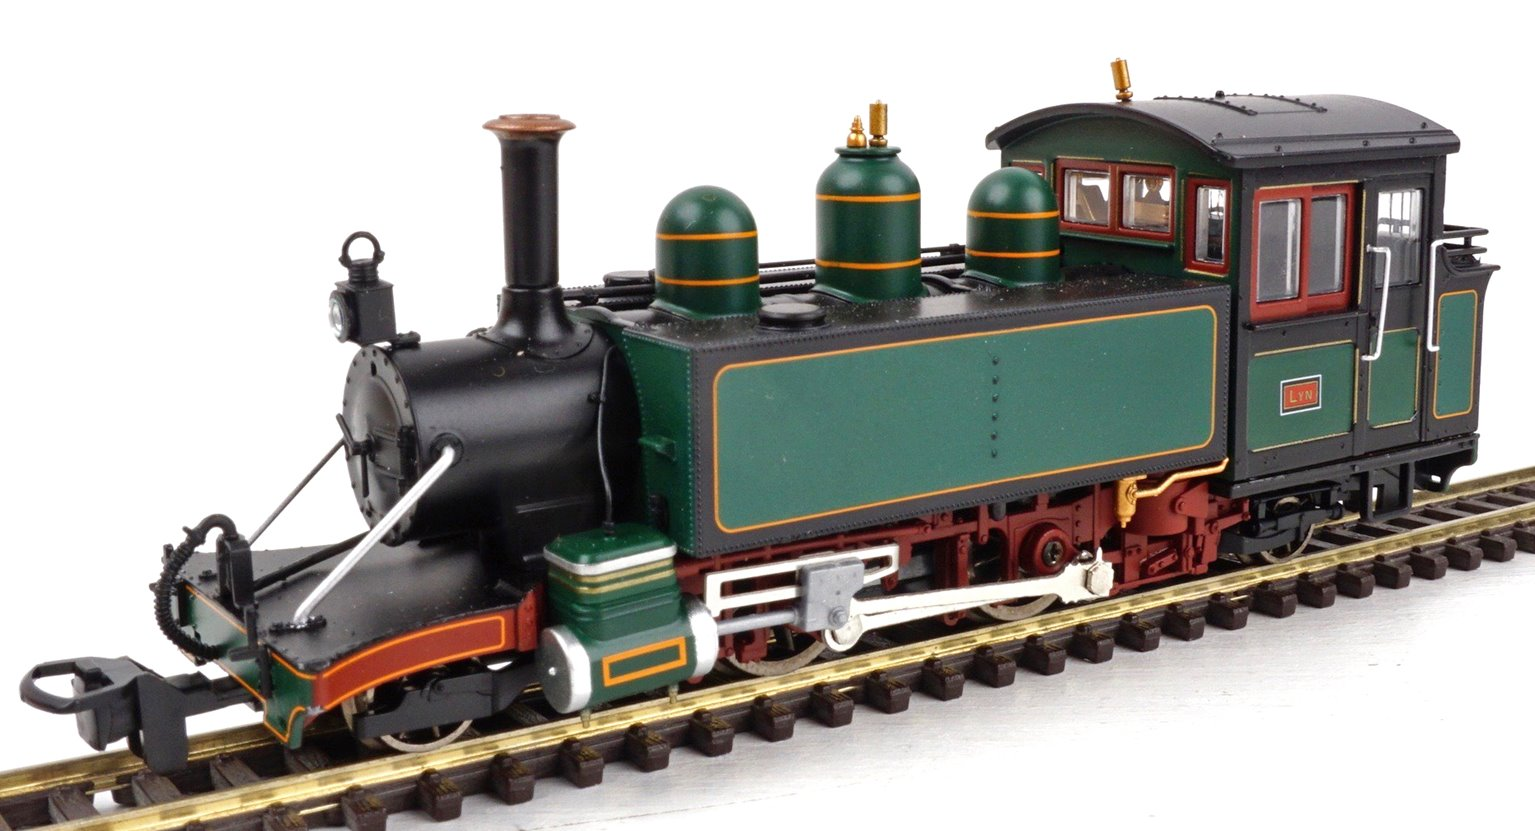 Lynton & Barnstaple Baldwin 2-4-2T L&BR dark green E762 Lyn (1906-22 with stovepipe chimney and SR numberplate)